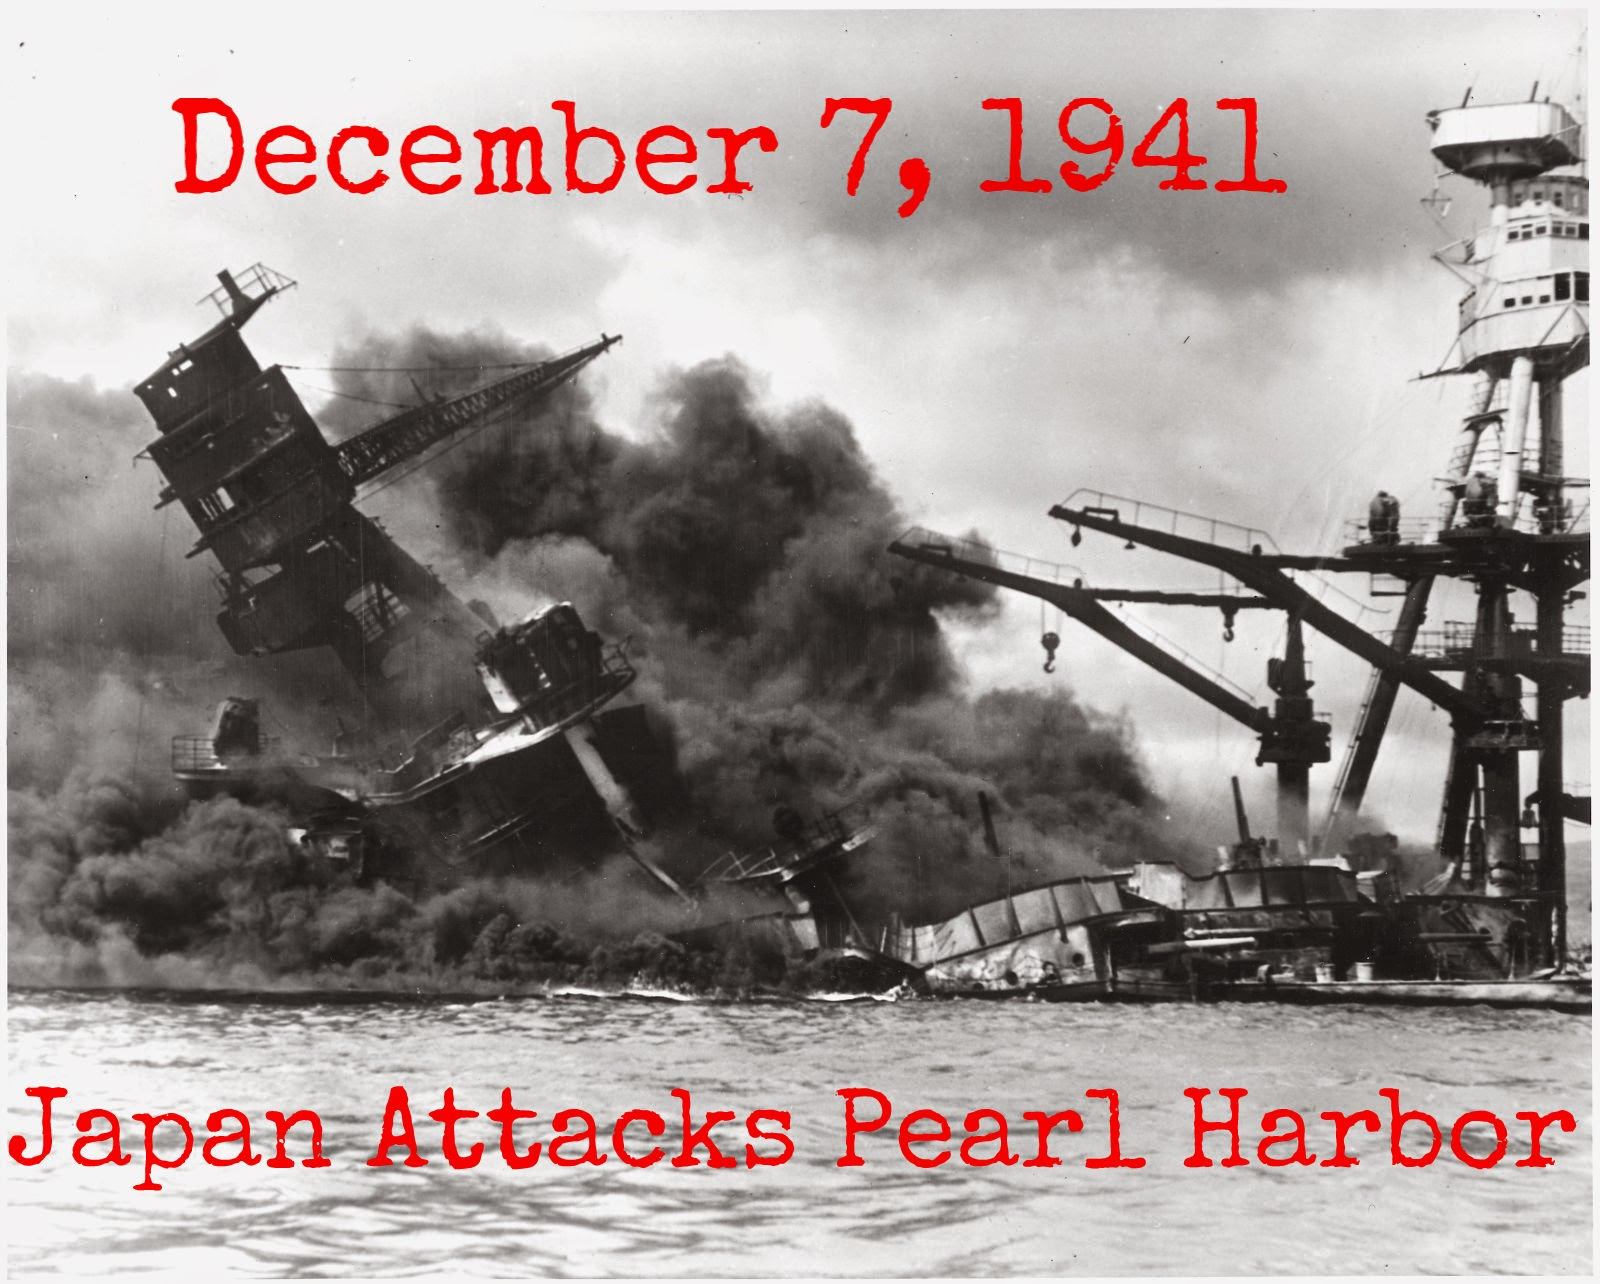 the surprise attack on pearl harbor On dec 7, 1941, the imperial japanese navy led a surprise attack against the us naval base at pearl harbor in this selection of powerful images, we look back at the fateful moments of the attack and its aftermath.